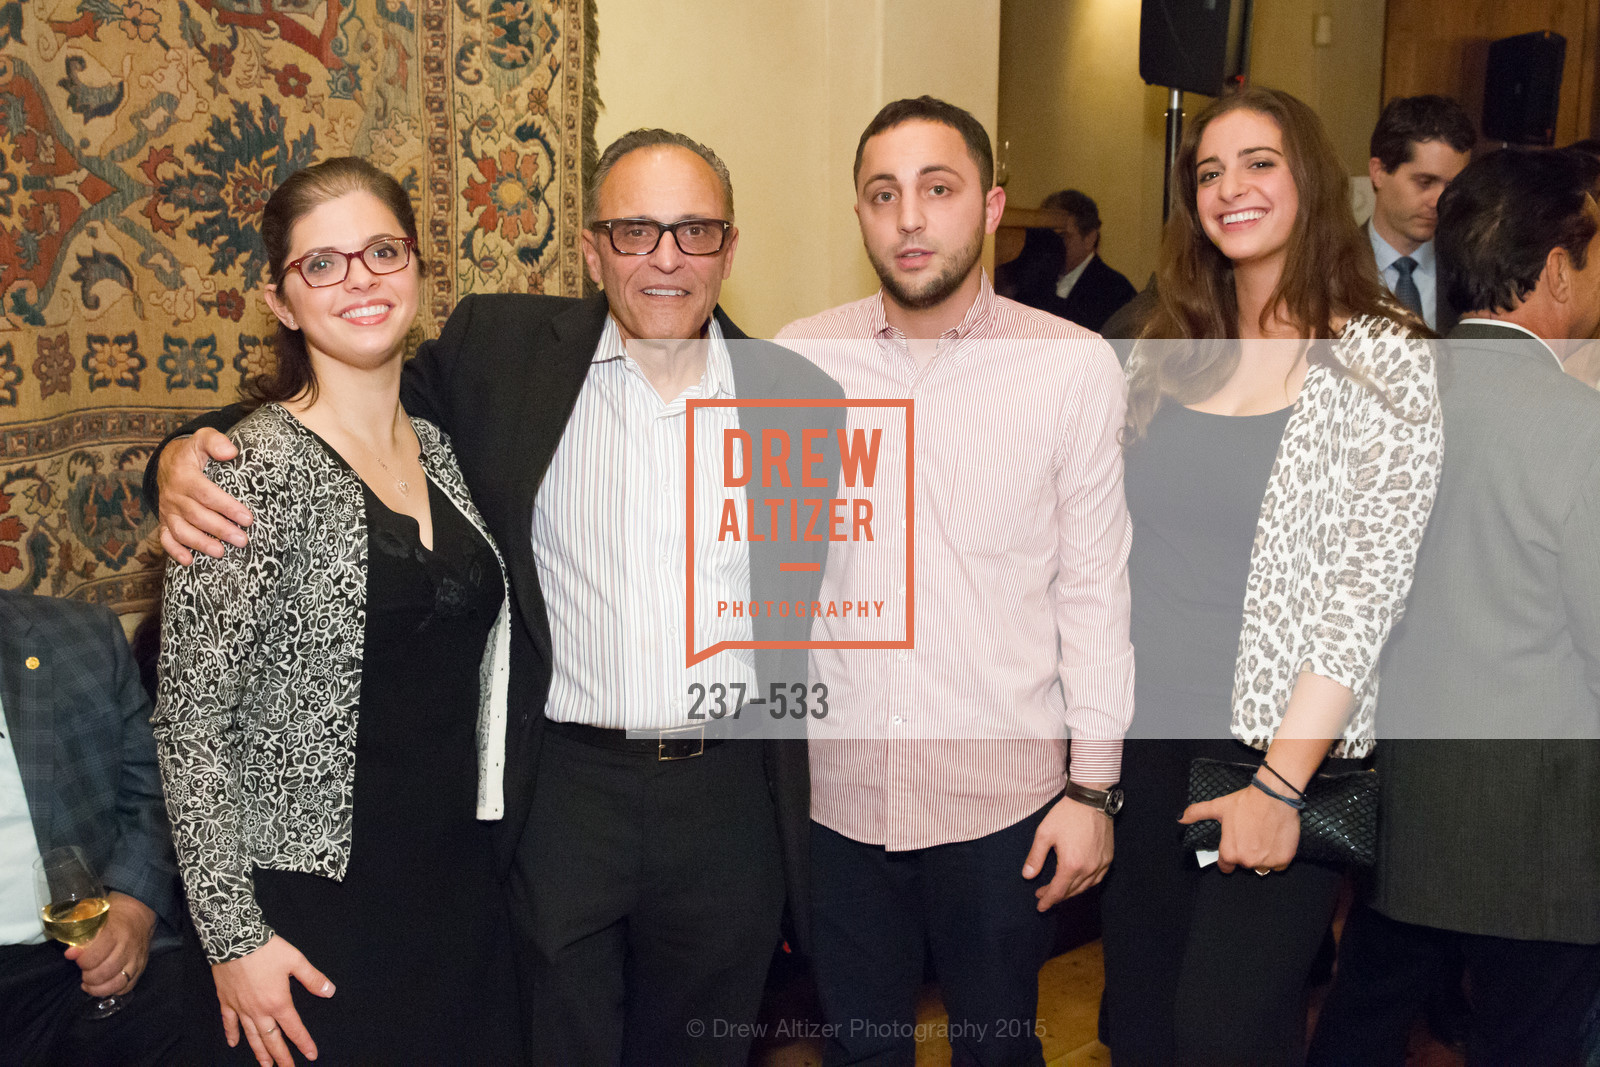 Calliope Makris, Constantine Makris, Michael Makris, Theodora Makris, Hellenic Charity Ball Cocktail Reception, Kokkari. 200 Jackson St, San Francisco, CA 94111, November 13th, 2015,Drew Altizer, Drew Altizer Photography, full-service agency, private events, San Francisco photographer, photographer california